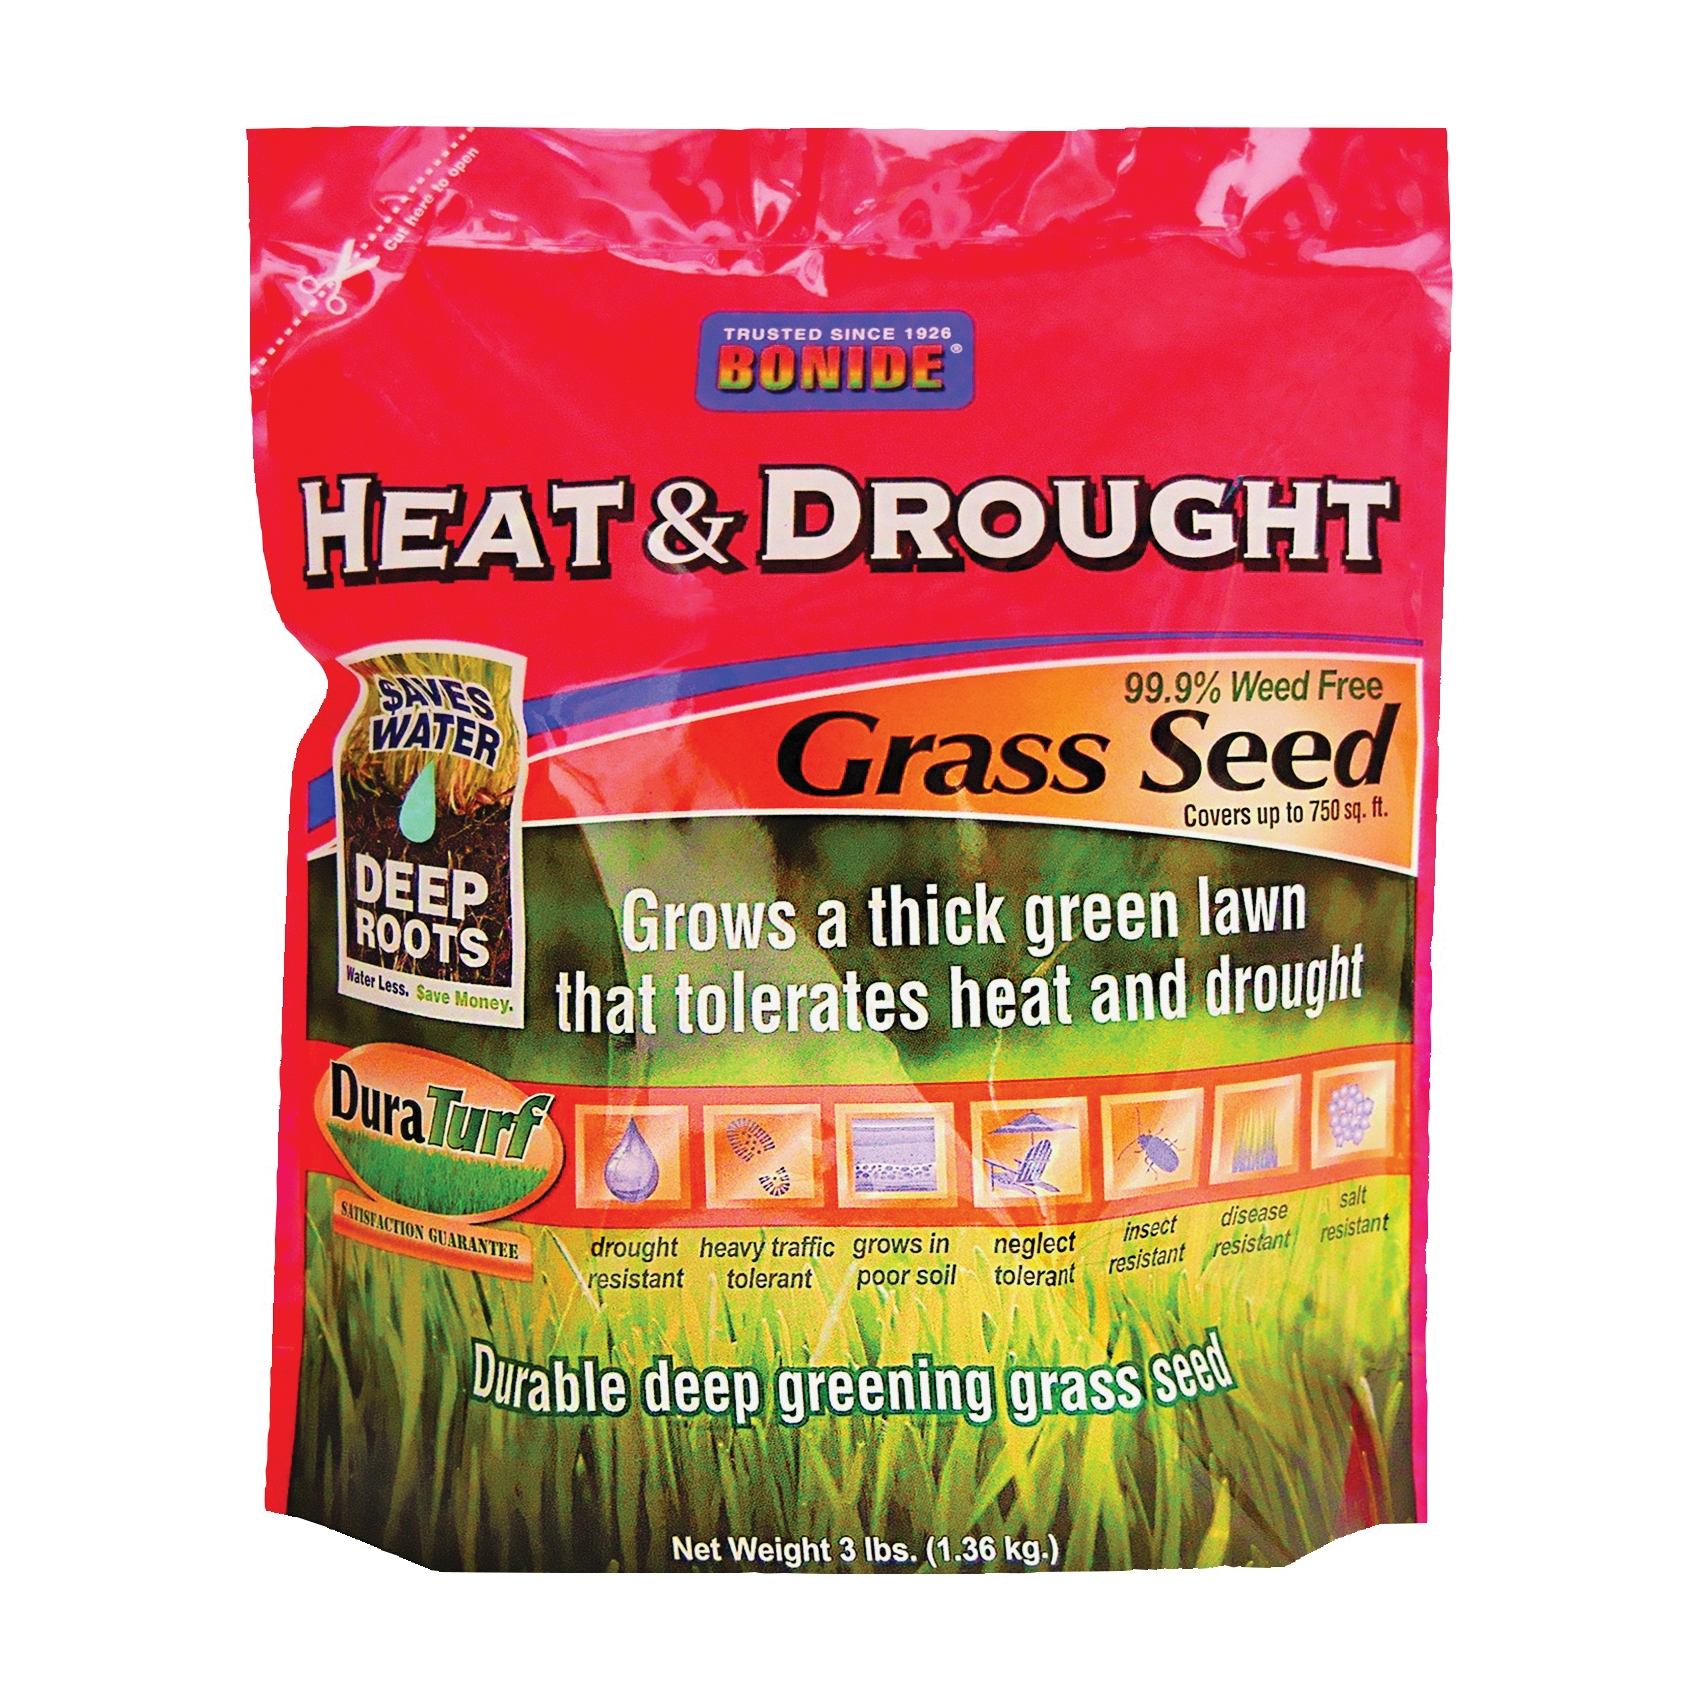 Picture of Bonide 60252 Heat and Drought Grass Seed, 3 lb Package, Bag